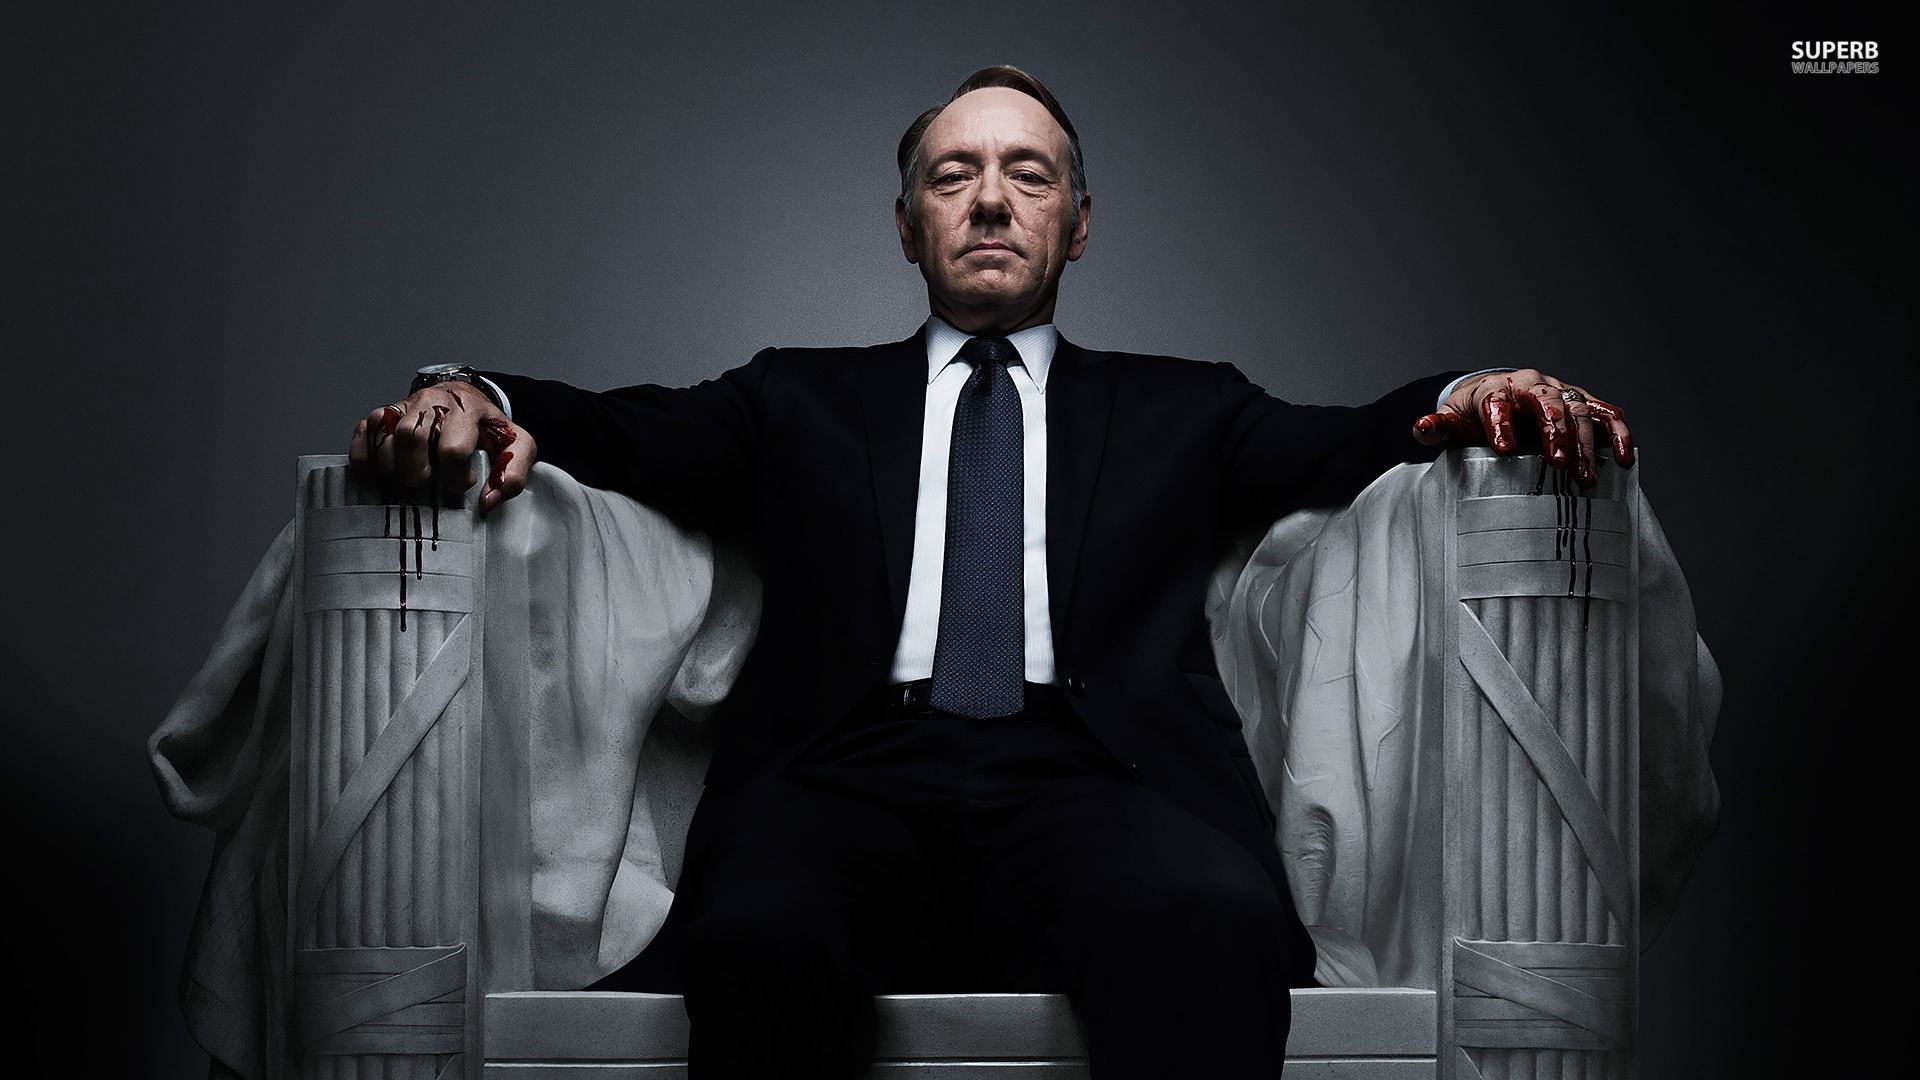 House Of Cards Iphone Wallpaper 1920x1080